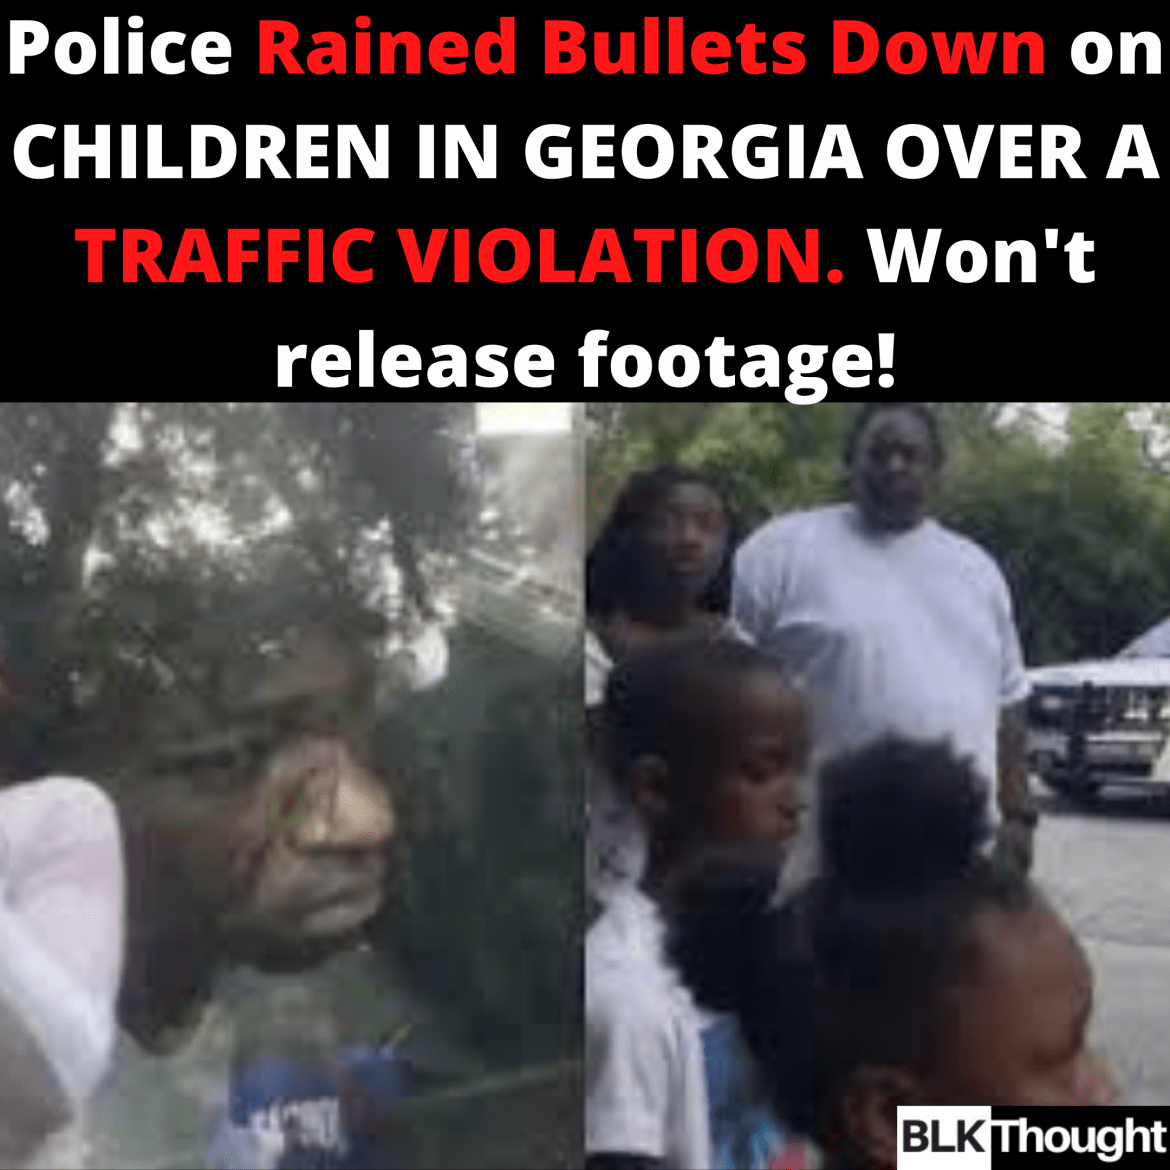 Bullets Rain Down On Children. We Want The Footage!